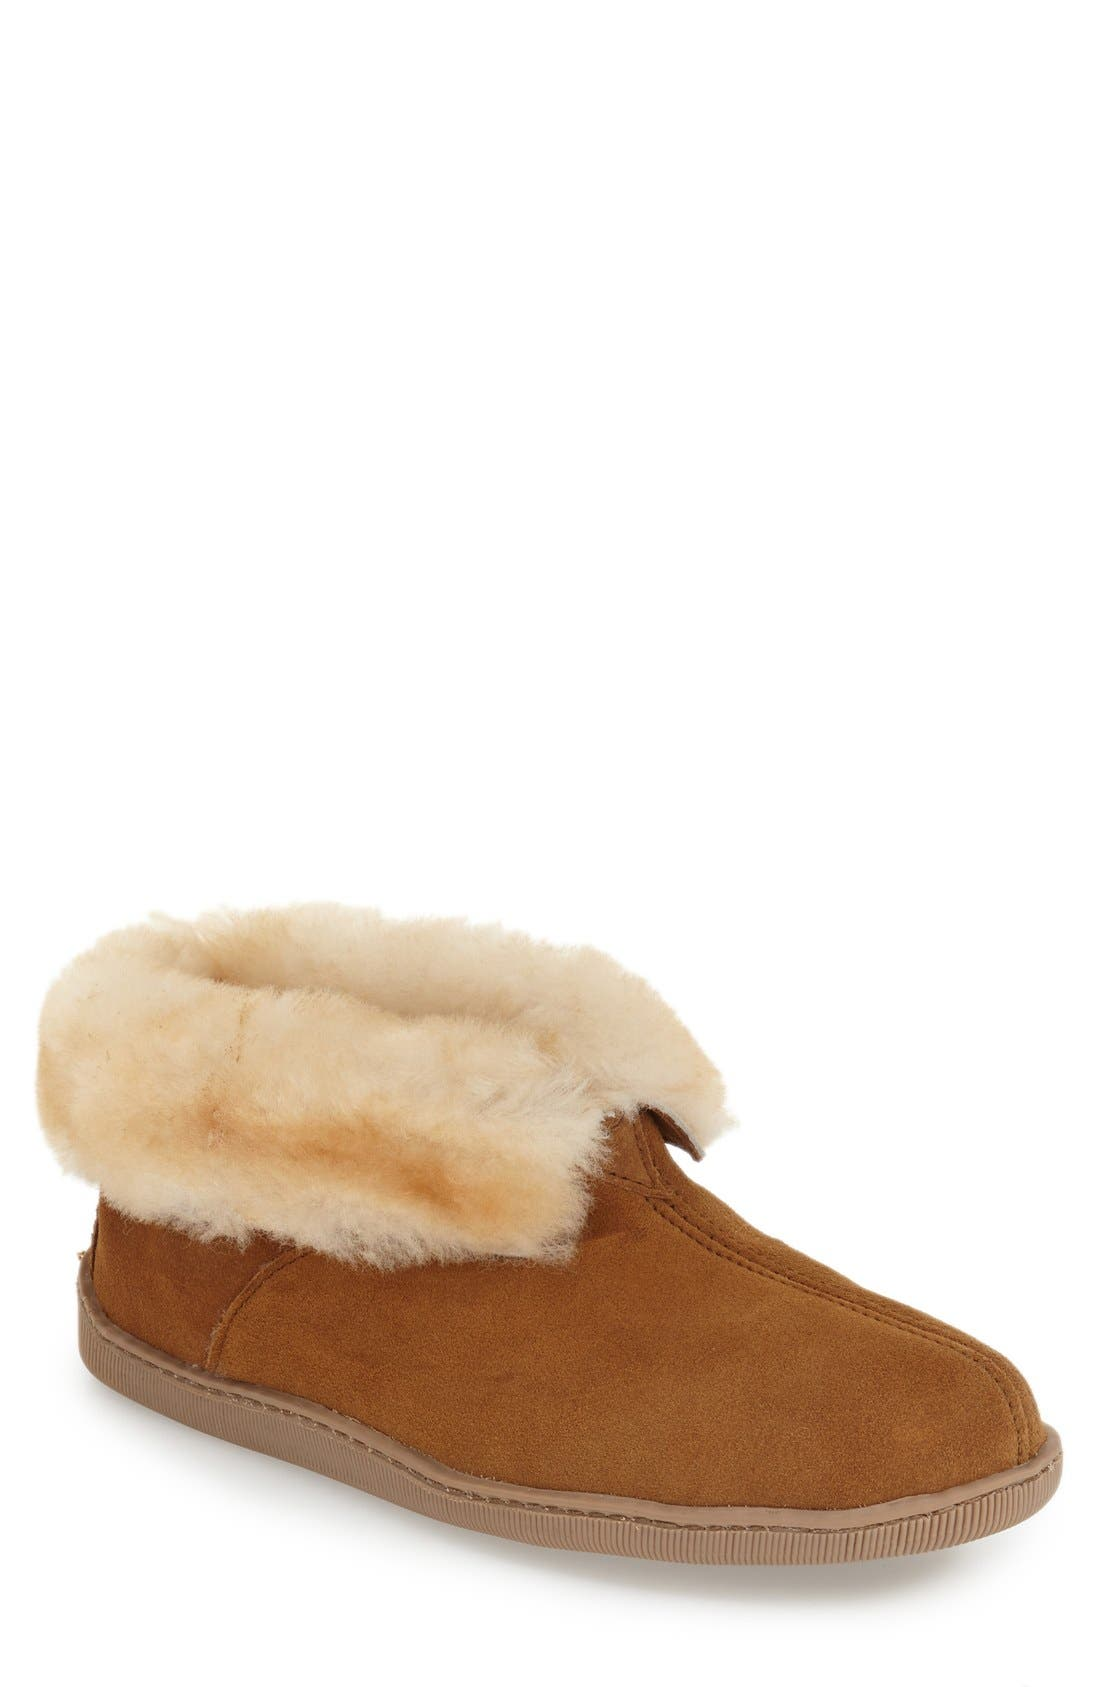 Genuine Shearling Lined Ankle Boot,                             Main thumbnail 1, color,                             GOLDEN TAN